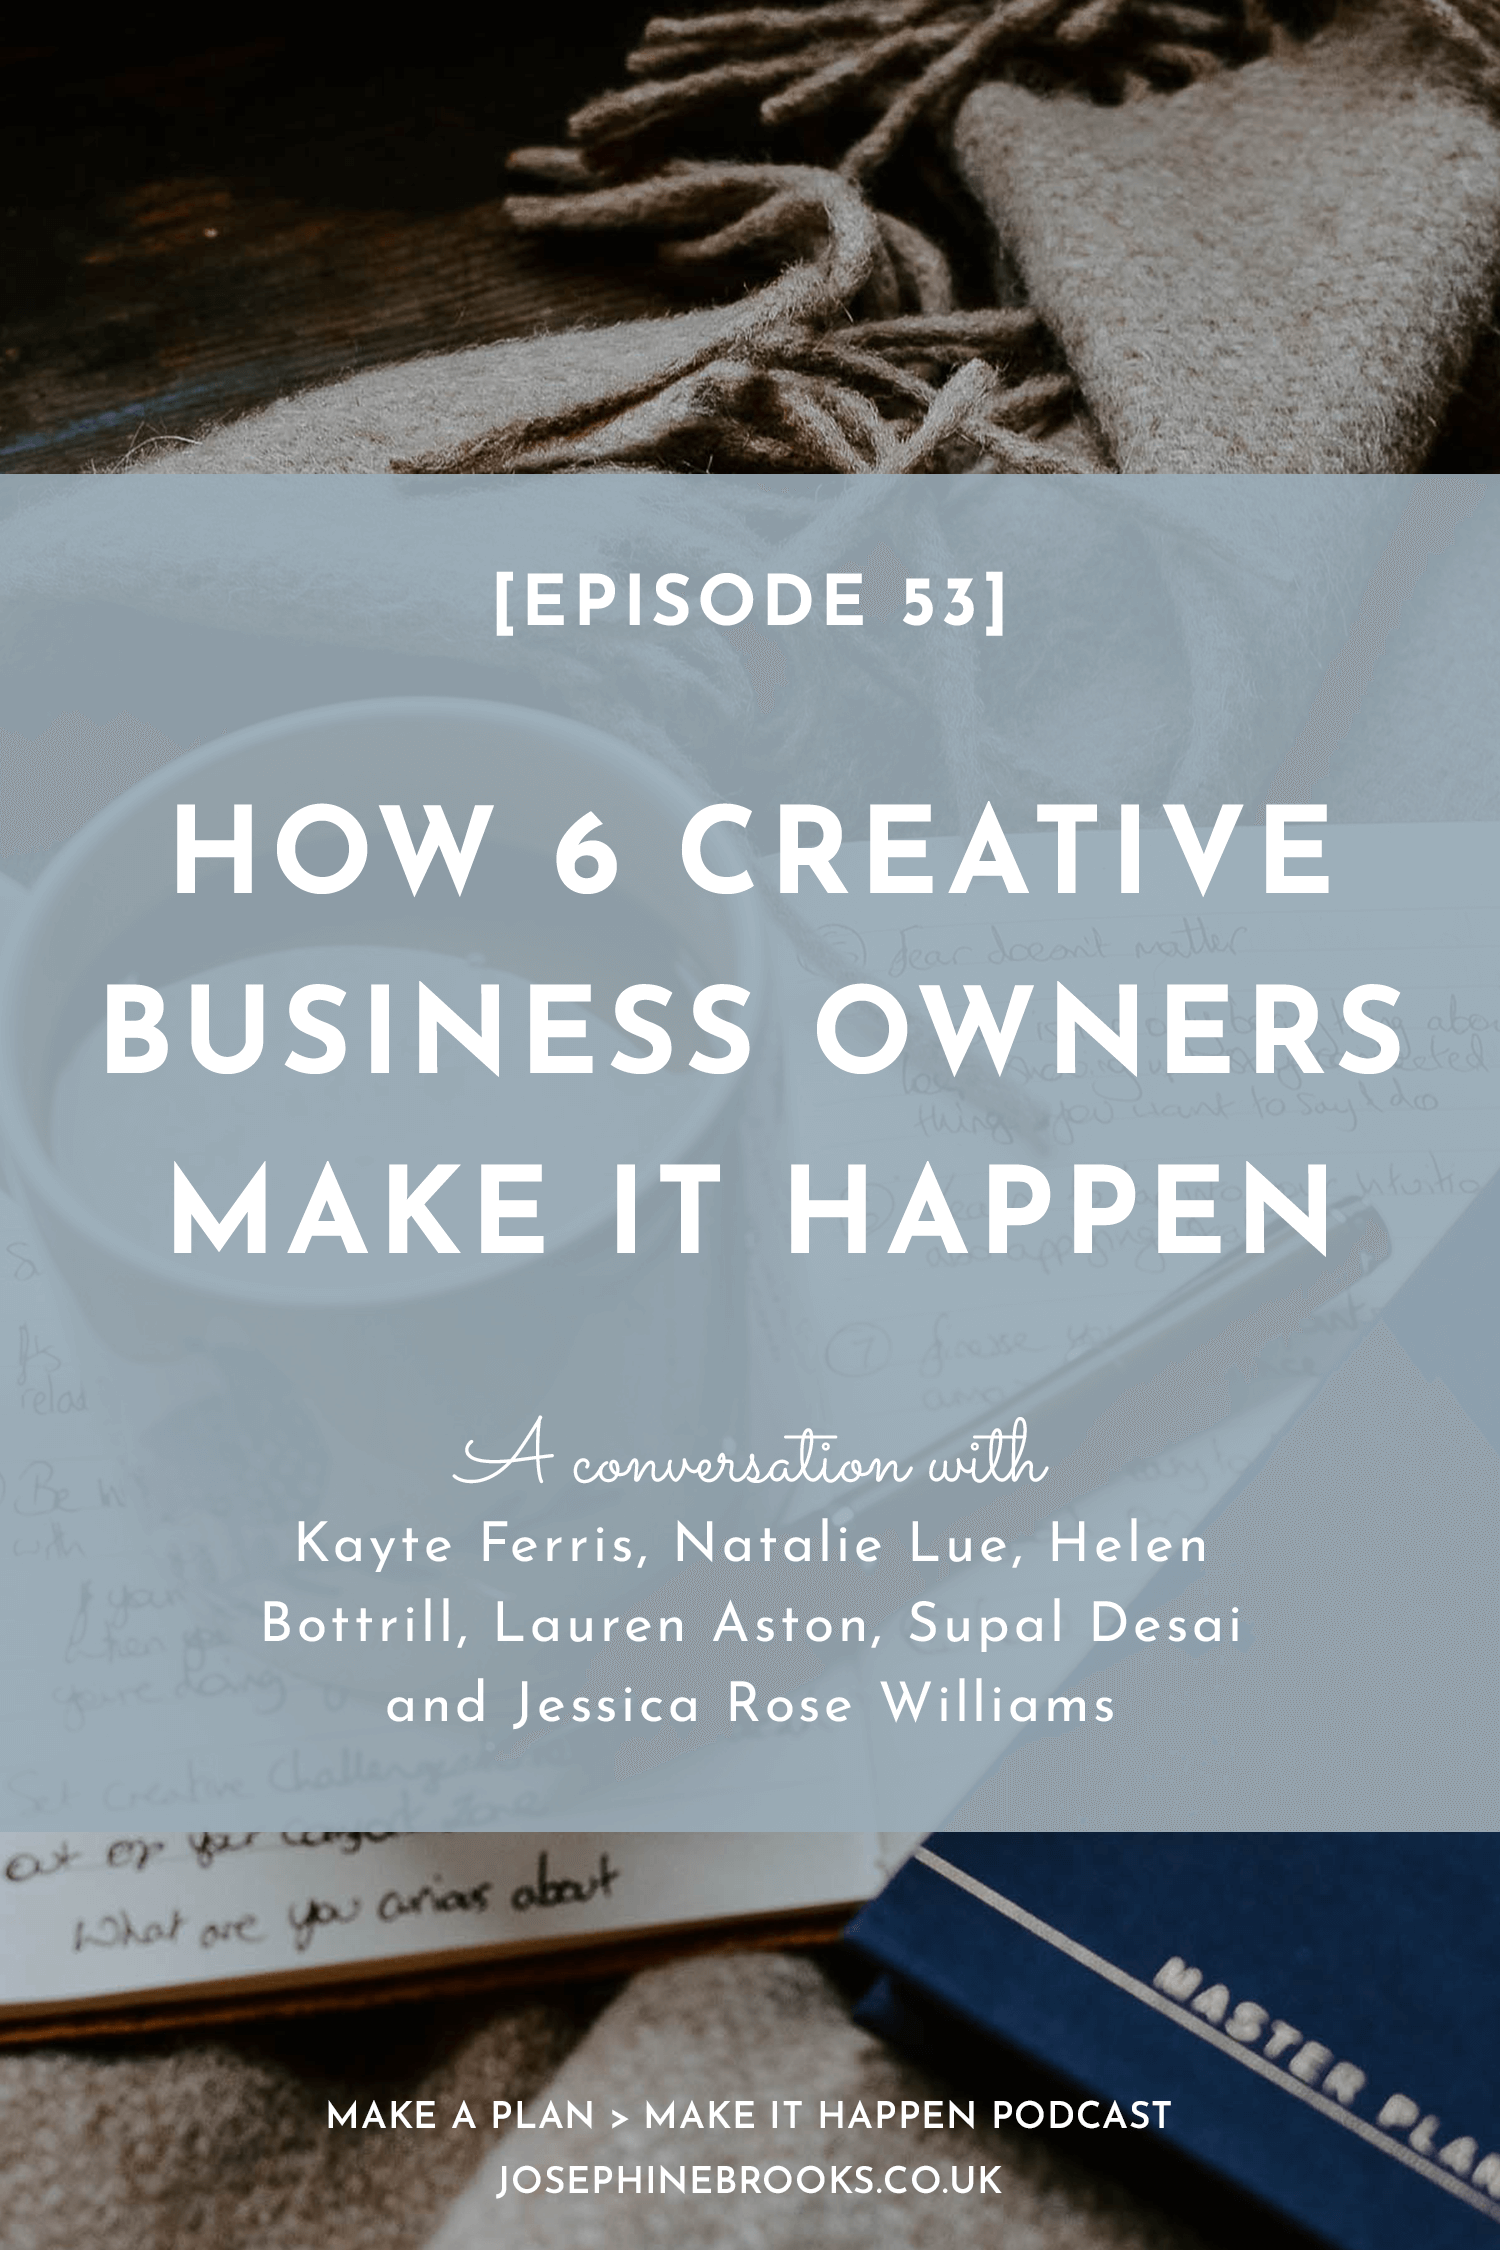 How 6 creative business owners make it happen in their business | Josephine Brooks